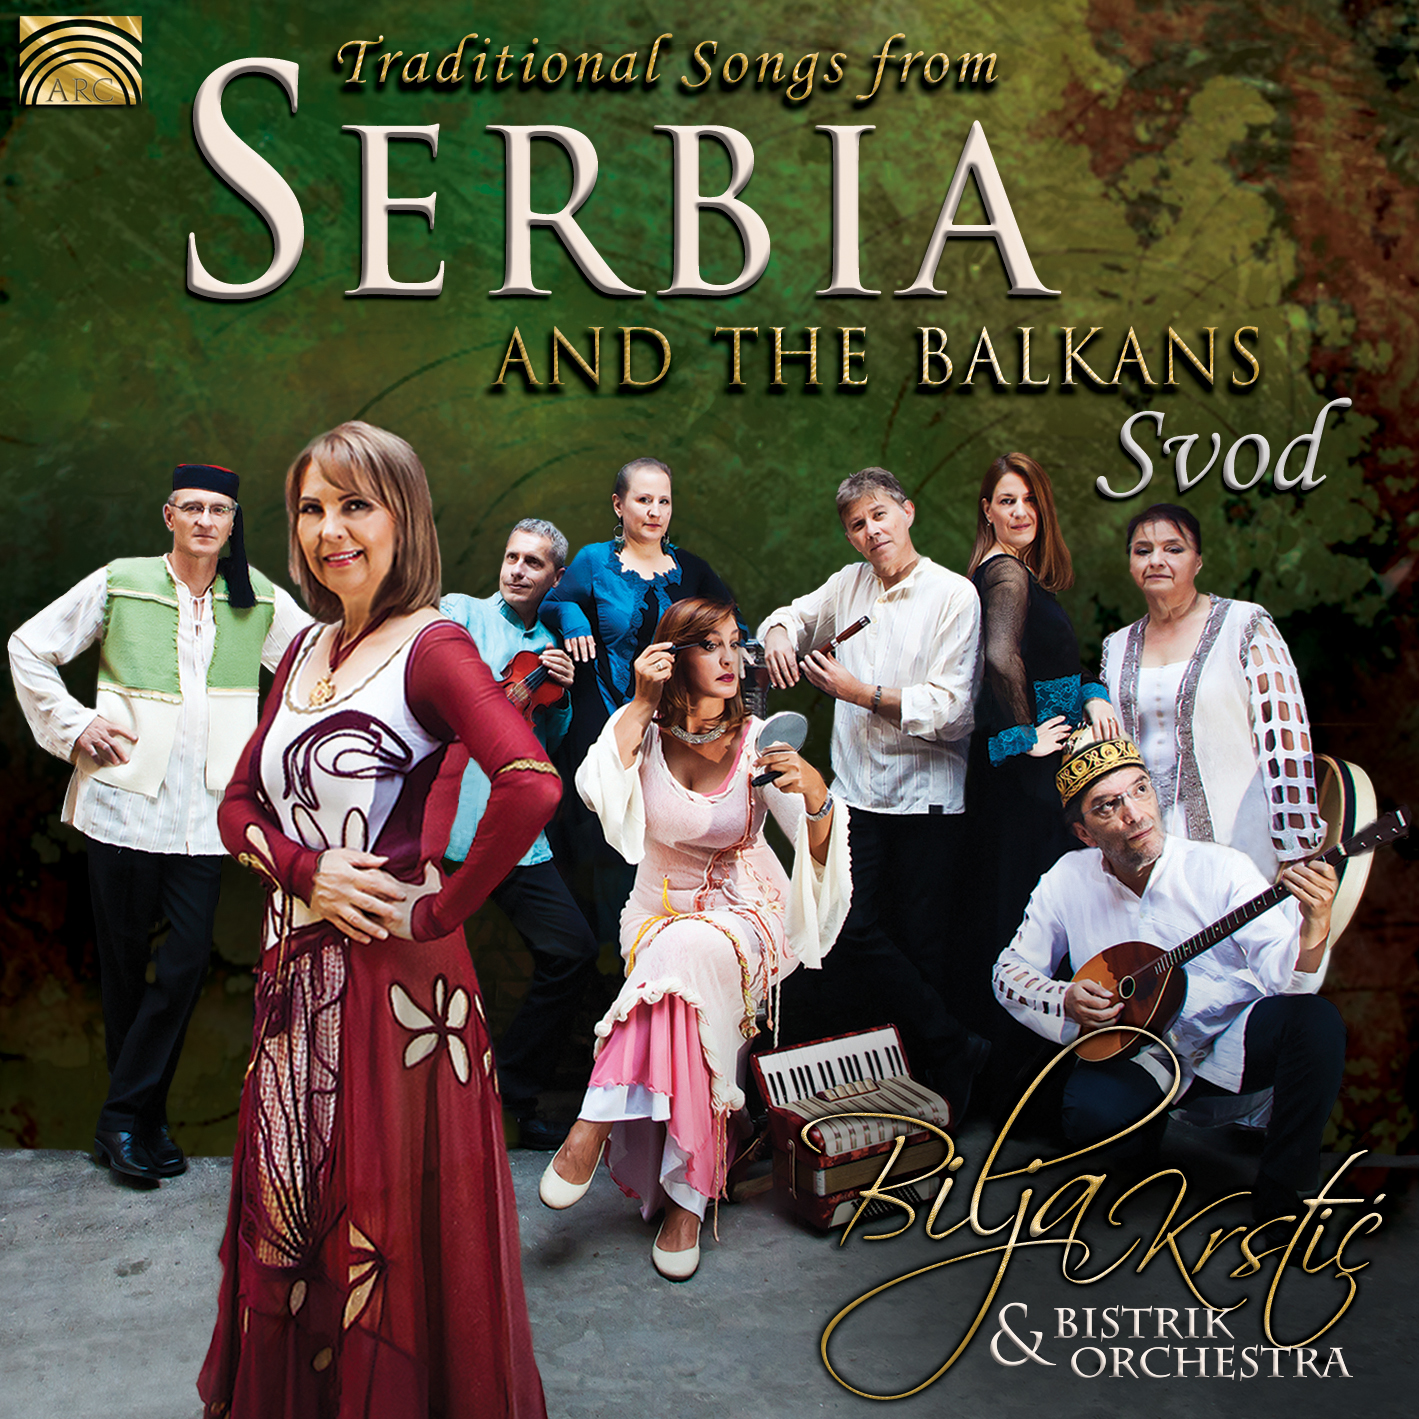 EUCD2687 Traditional Songs from Serbia and the Balkans - Svod